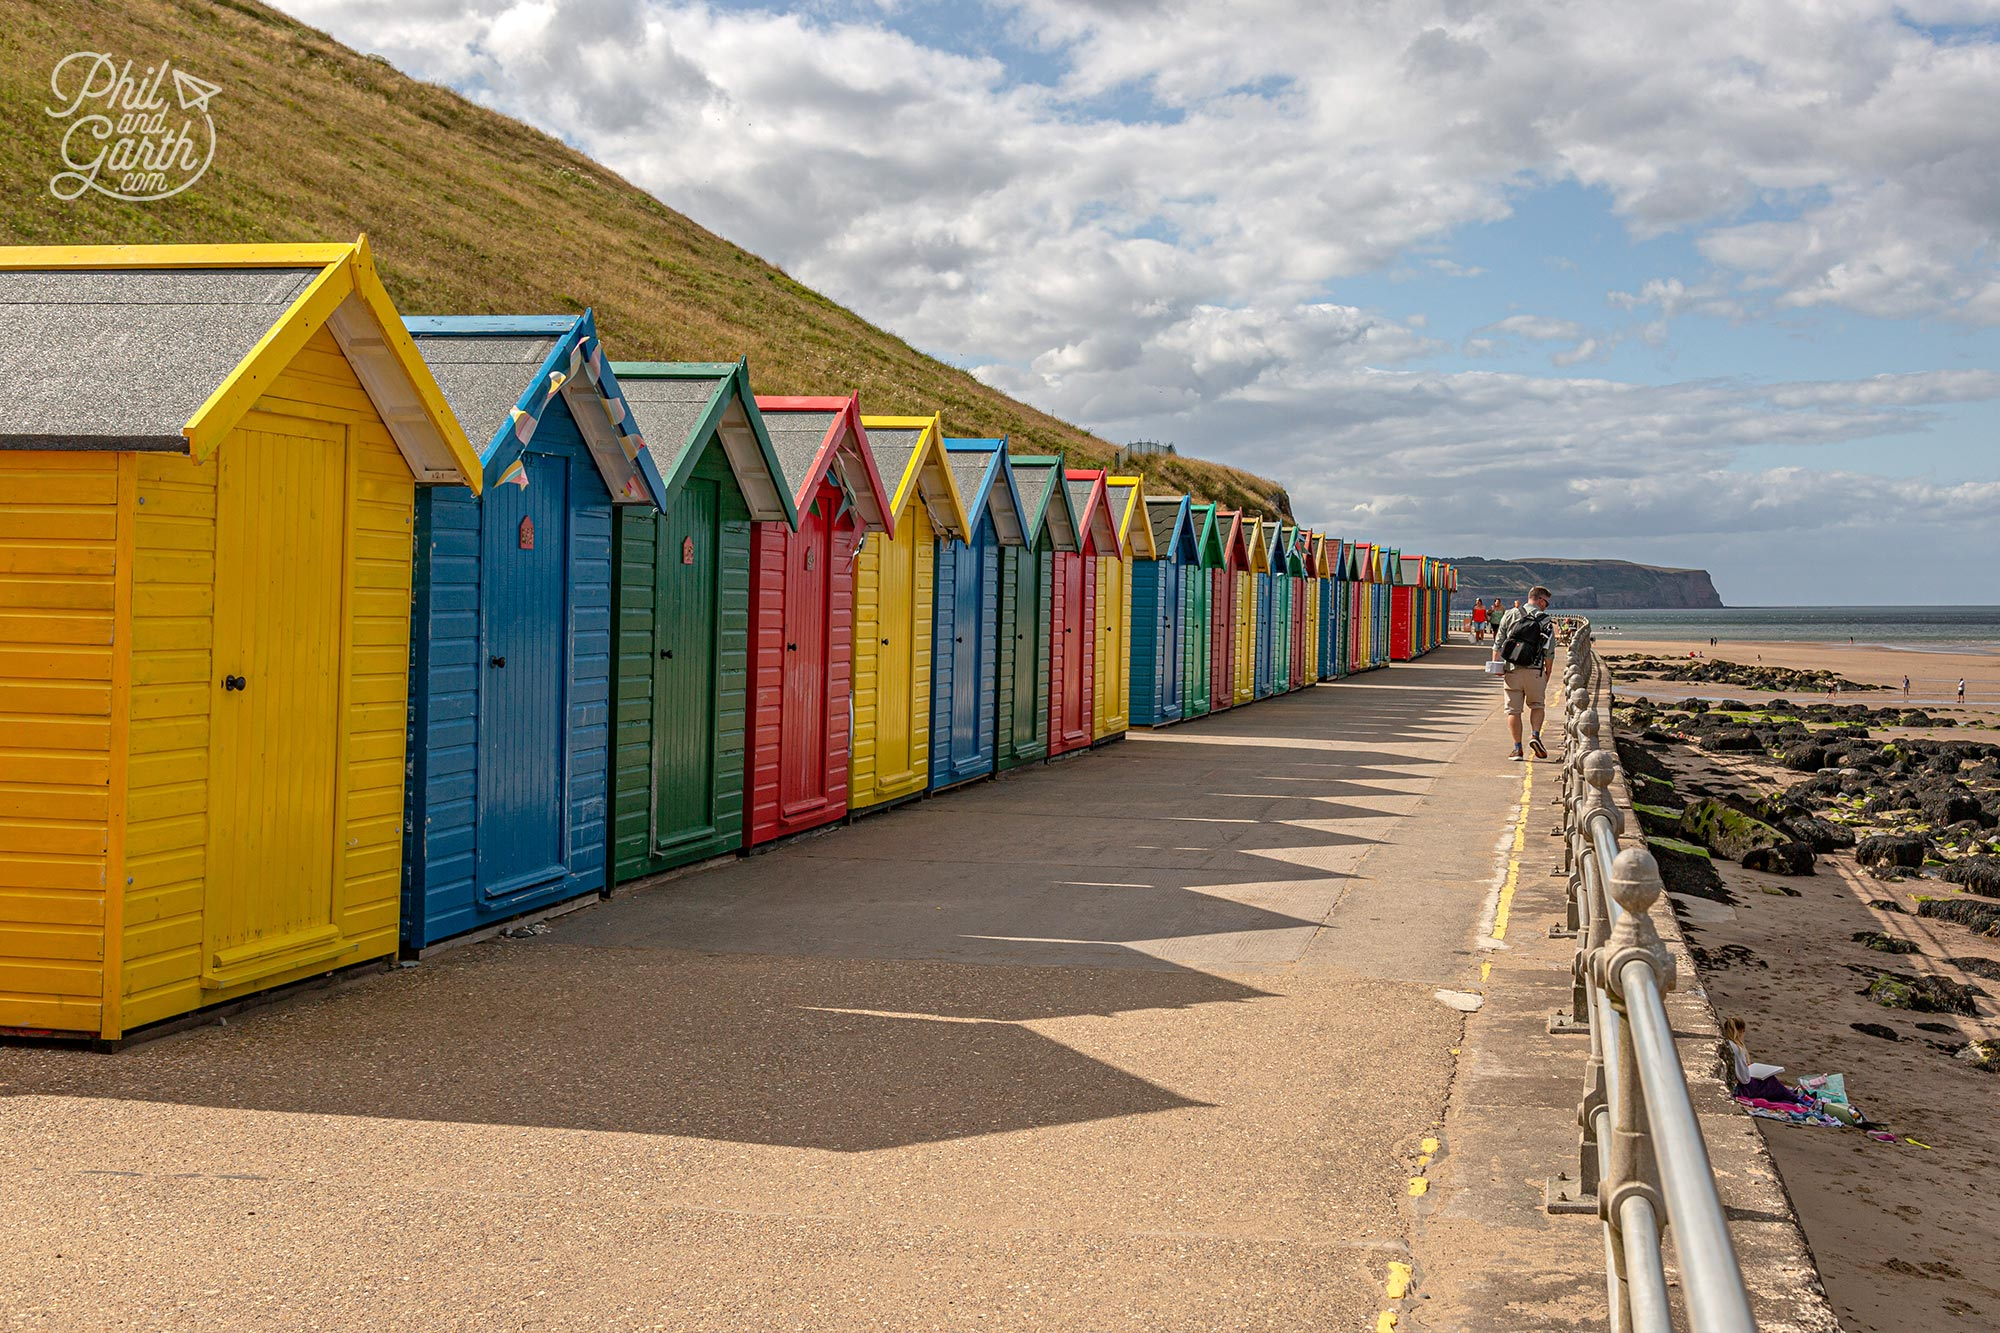 It is possible to rent and book online one of these Whitby beach huts